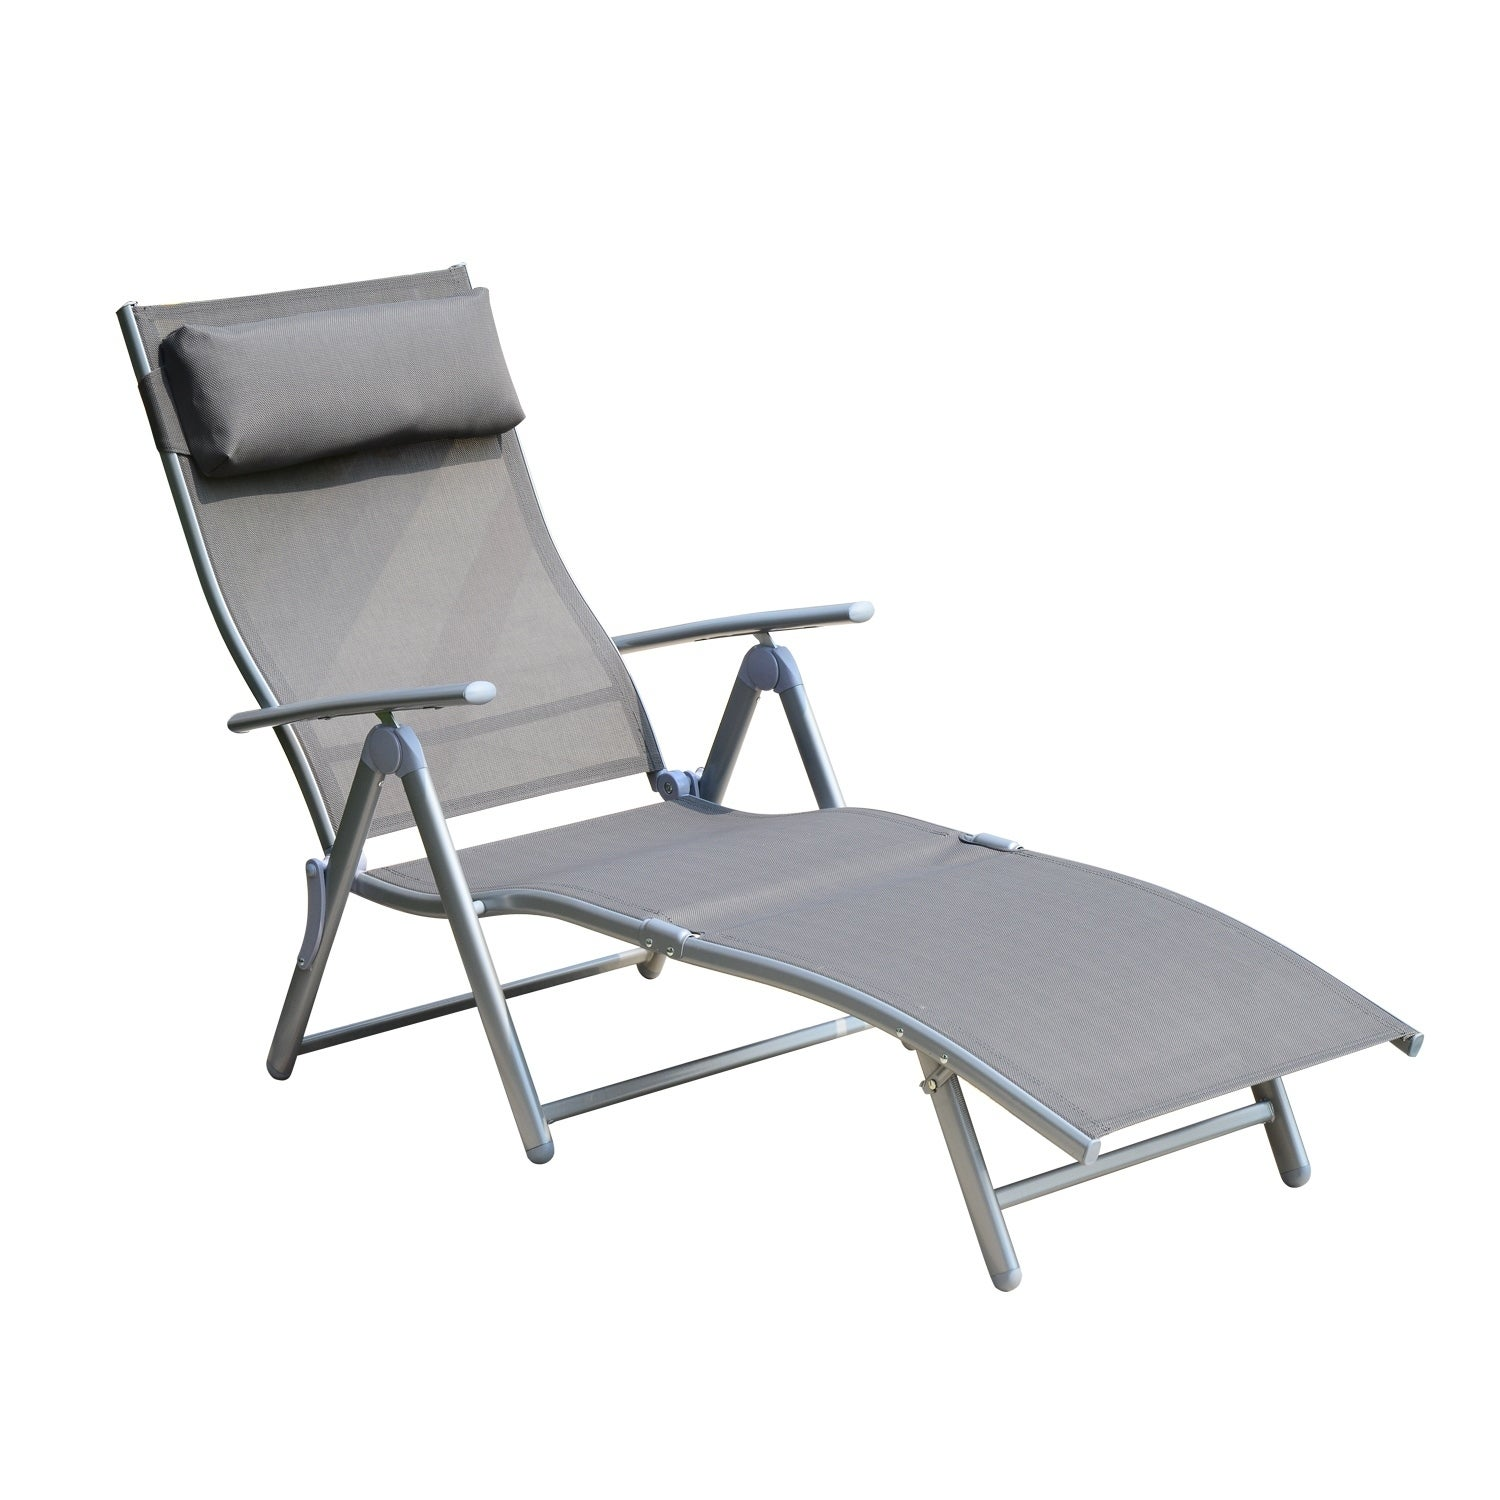 Outsunny Steel Fabric Outdoor Folding Chaise Lounge Chair Recliner With Portable Design Adjustable Backrest Grey Overstock 18126448